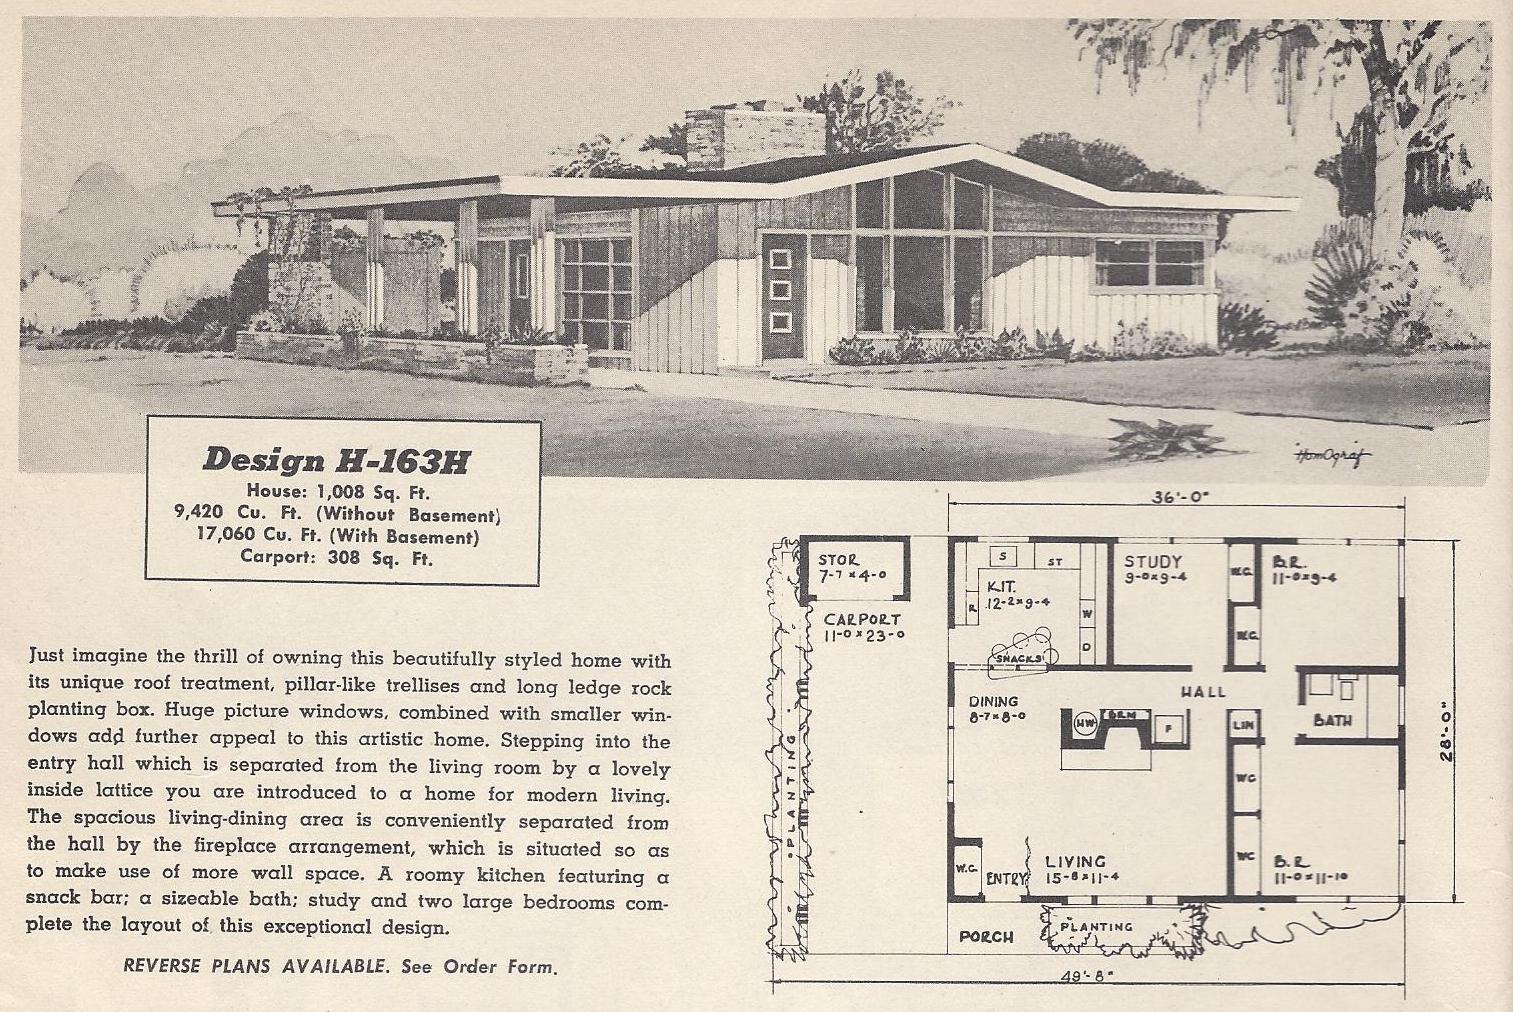 Vintage House Plans 163h on 1960s L Shaped Ranch House Plans